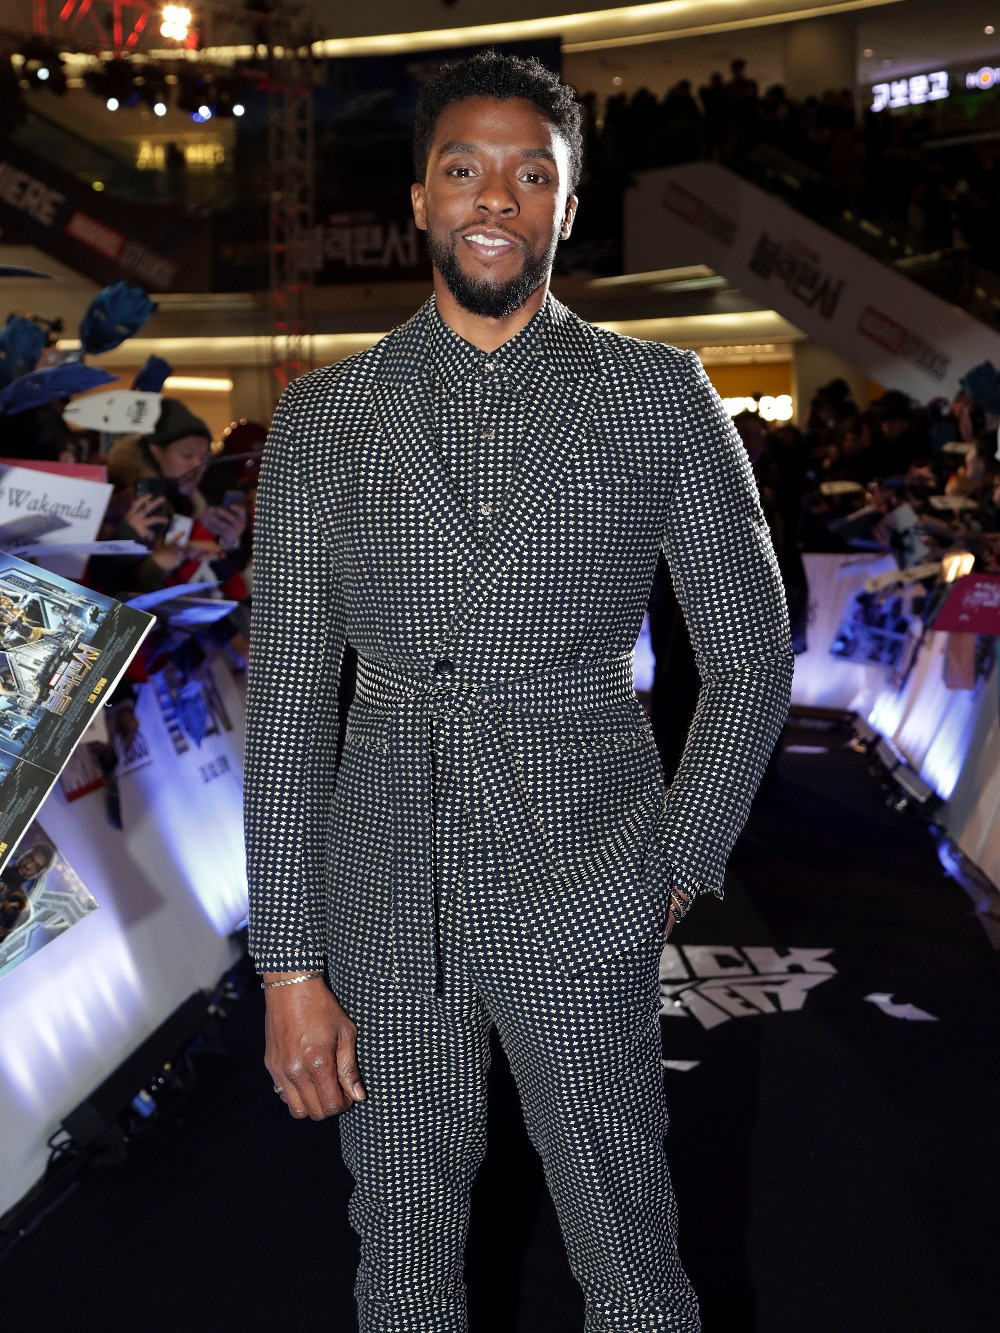 One of Weston's favorite looks that she's dressed Boseman in- this Dzojchen suit for the Black Panther premiere in Seoul, South Korea.